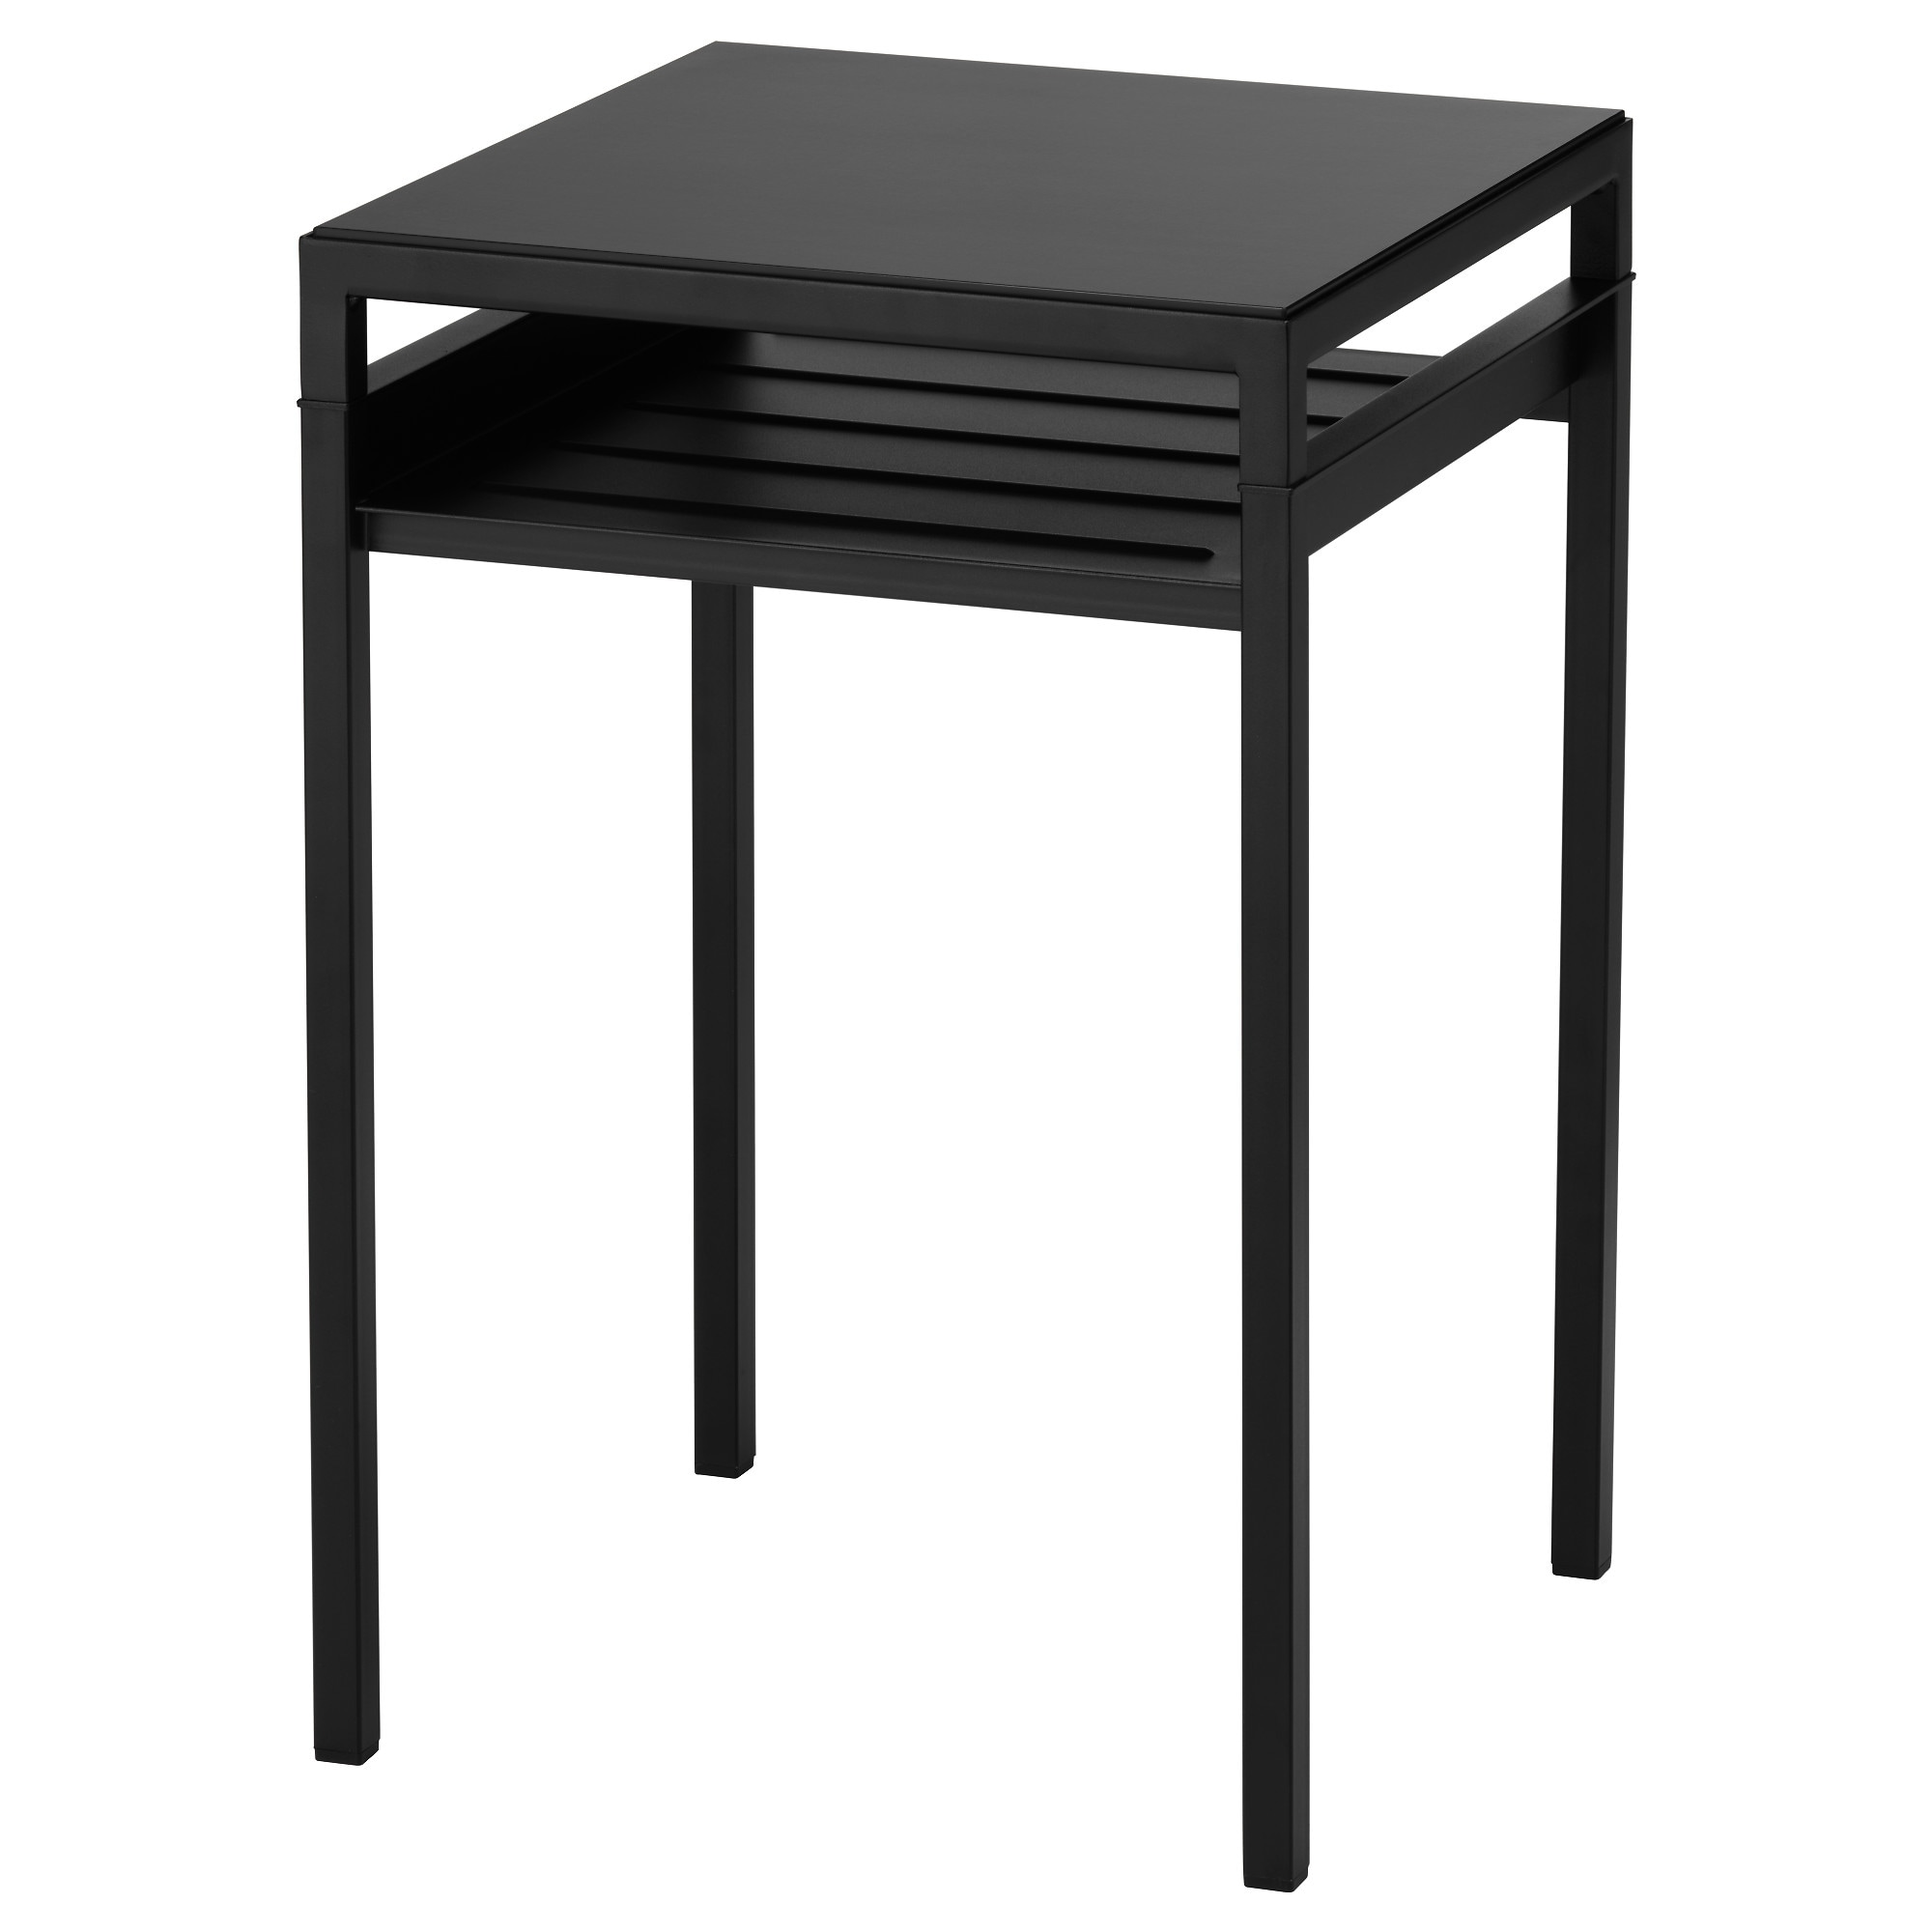 NYBODA Side table w reversible table top black beige IKEA